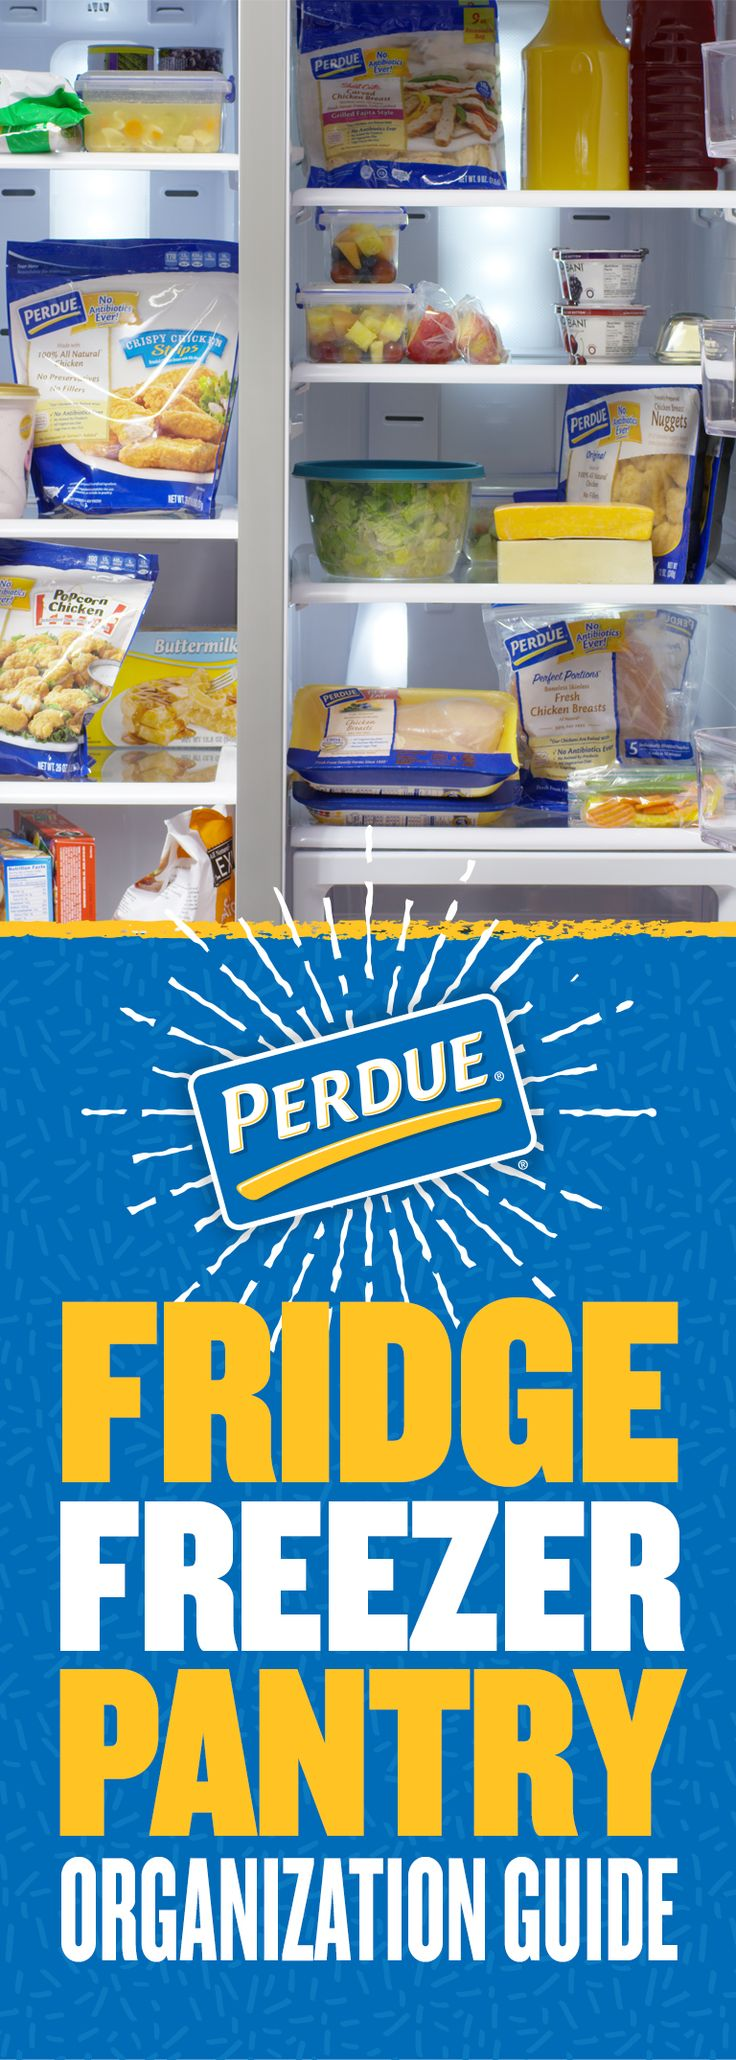 Time to get organized! We've got all kinds of tips and tricks to get your fridge, freezer and pantry more organized than ever. Head over to Perdue.com to check them out!